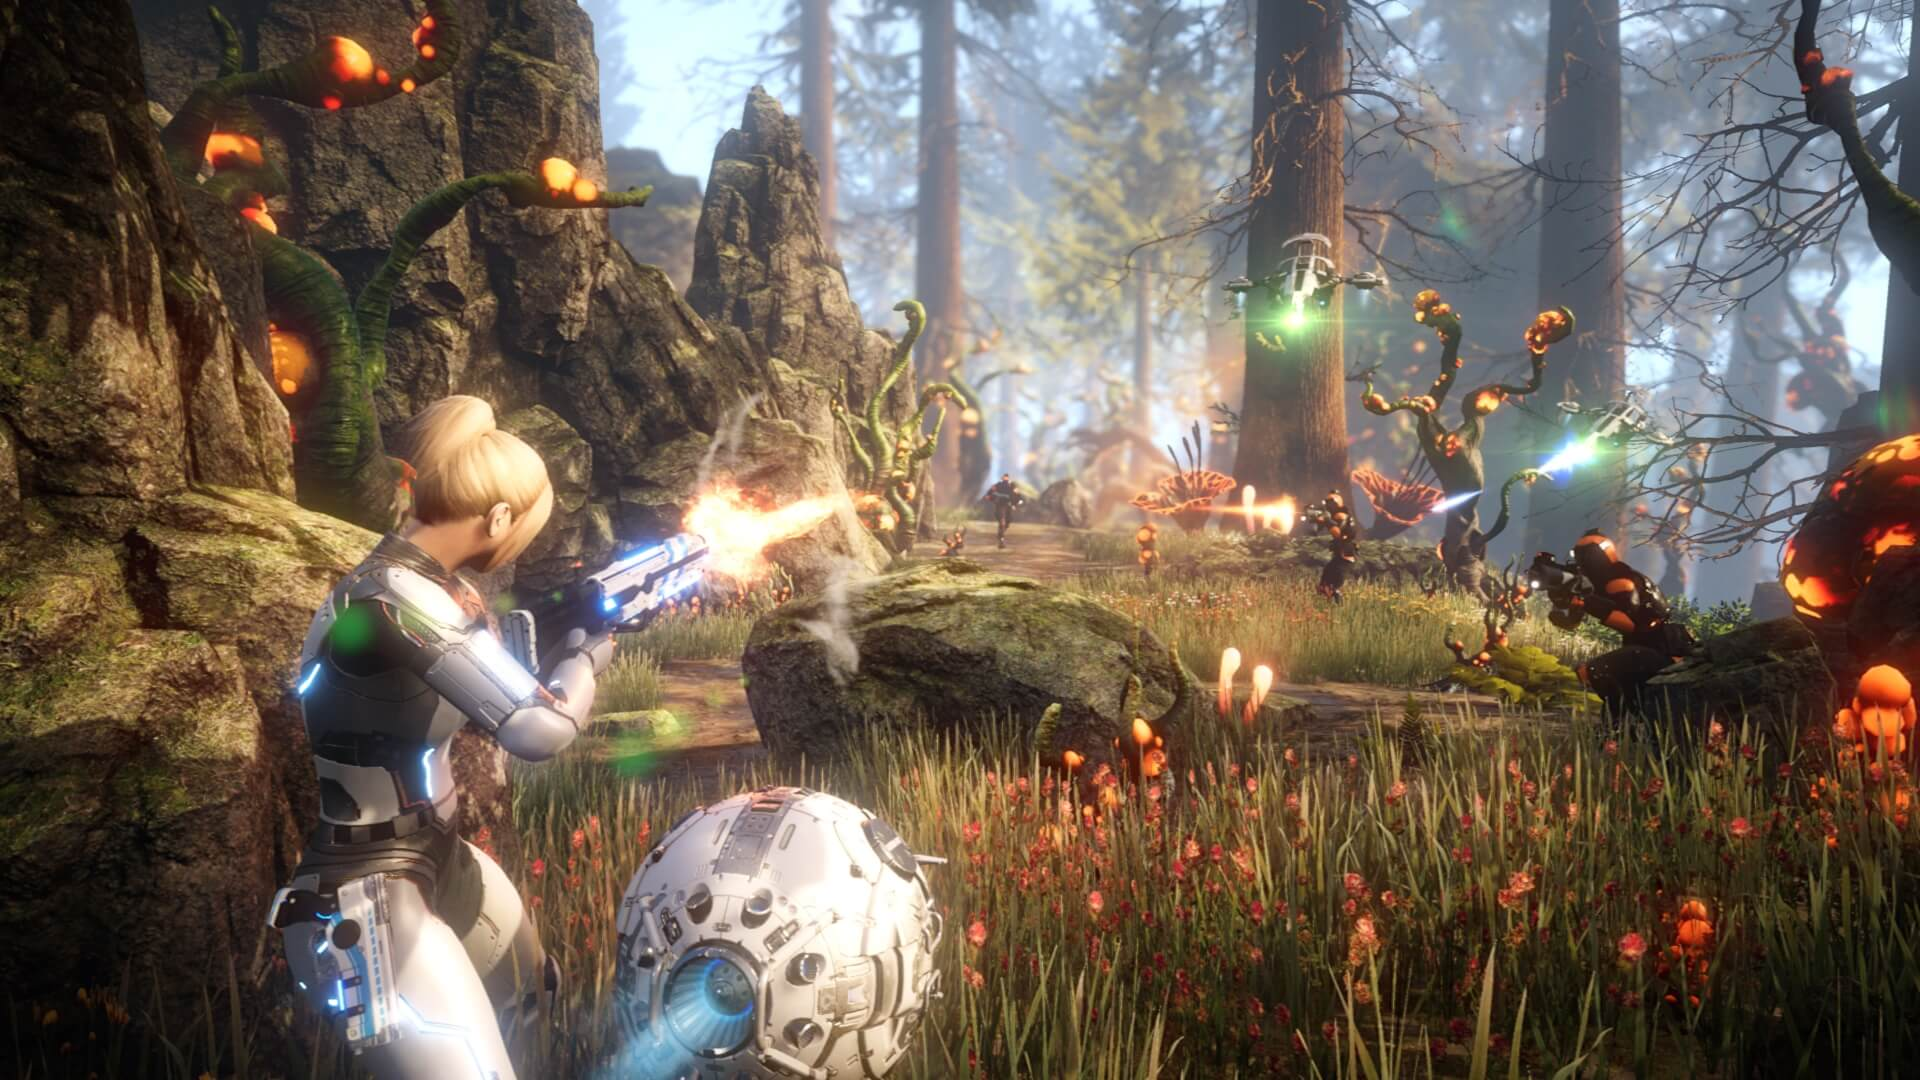 Foto de Everreach: Project Eden, RPG  Sci-Fi, foi anunciado para PC, Xbox One e PS4